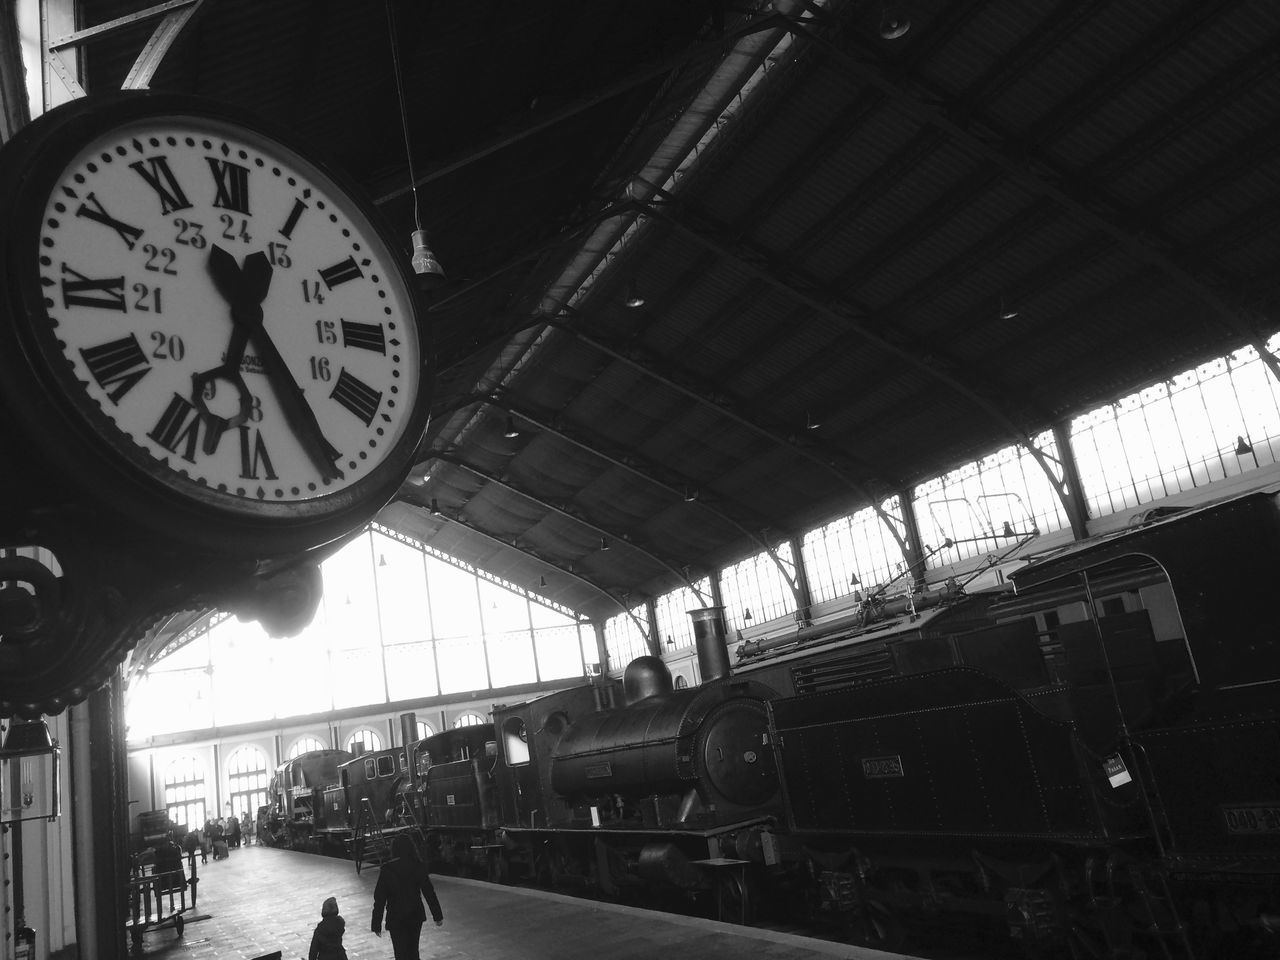 clock, time, rail transportation, public transportation, transportation, railroad station, train - vehicle, railroad station platform, low angle view, indoors, mode of transport, real people, men, day, clock face, minute hand, people